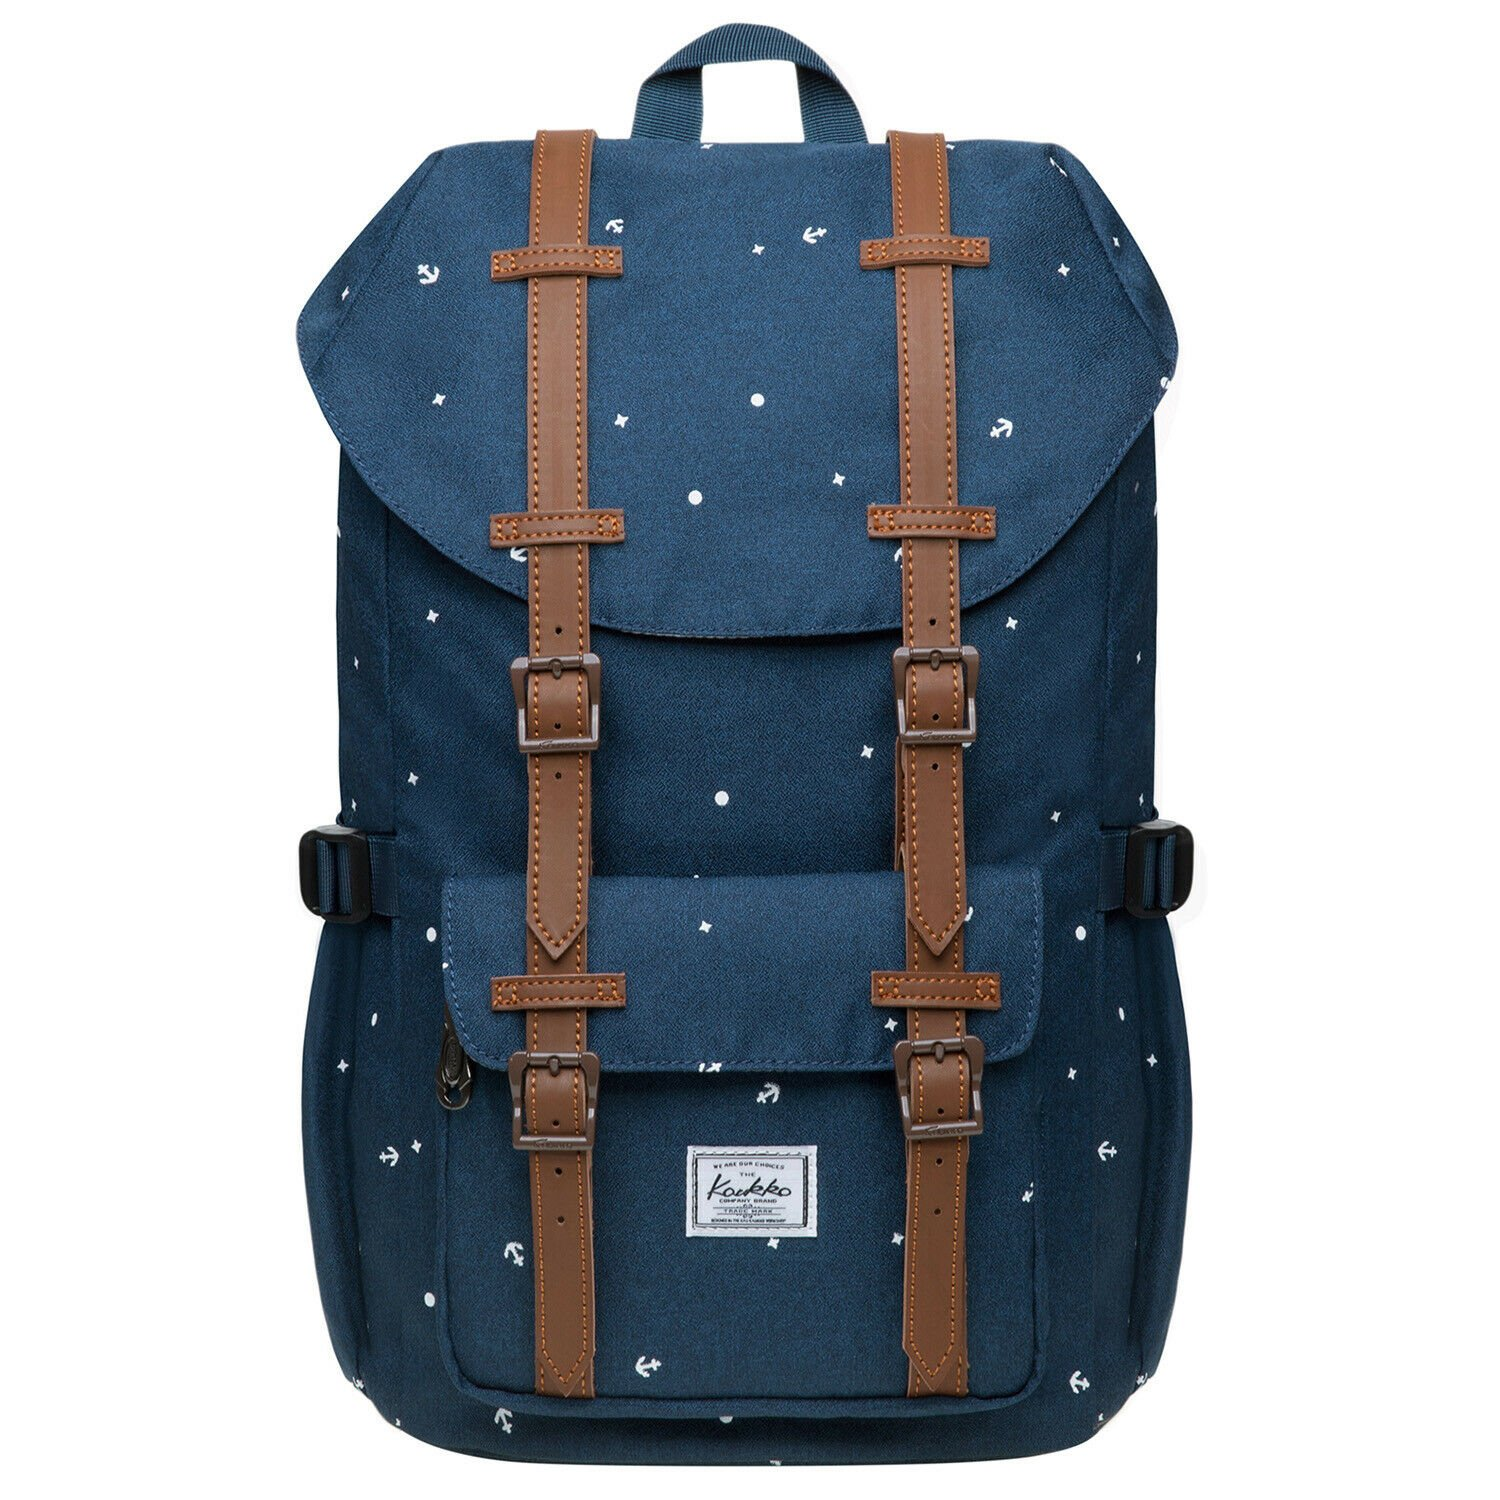 Travel Hiking& Camping Rucksack Pack, Casual Large College School ...